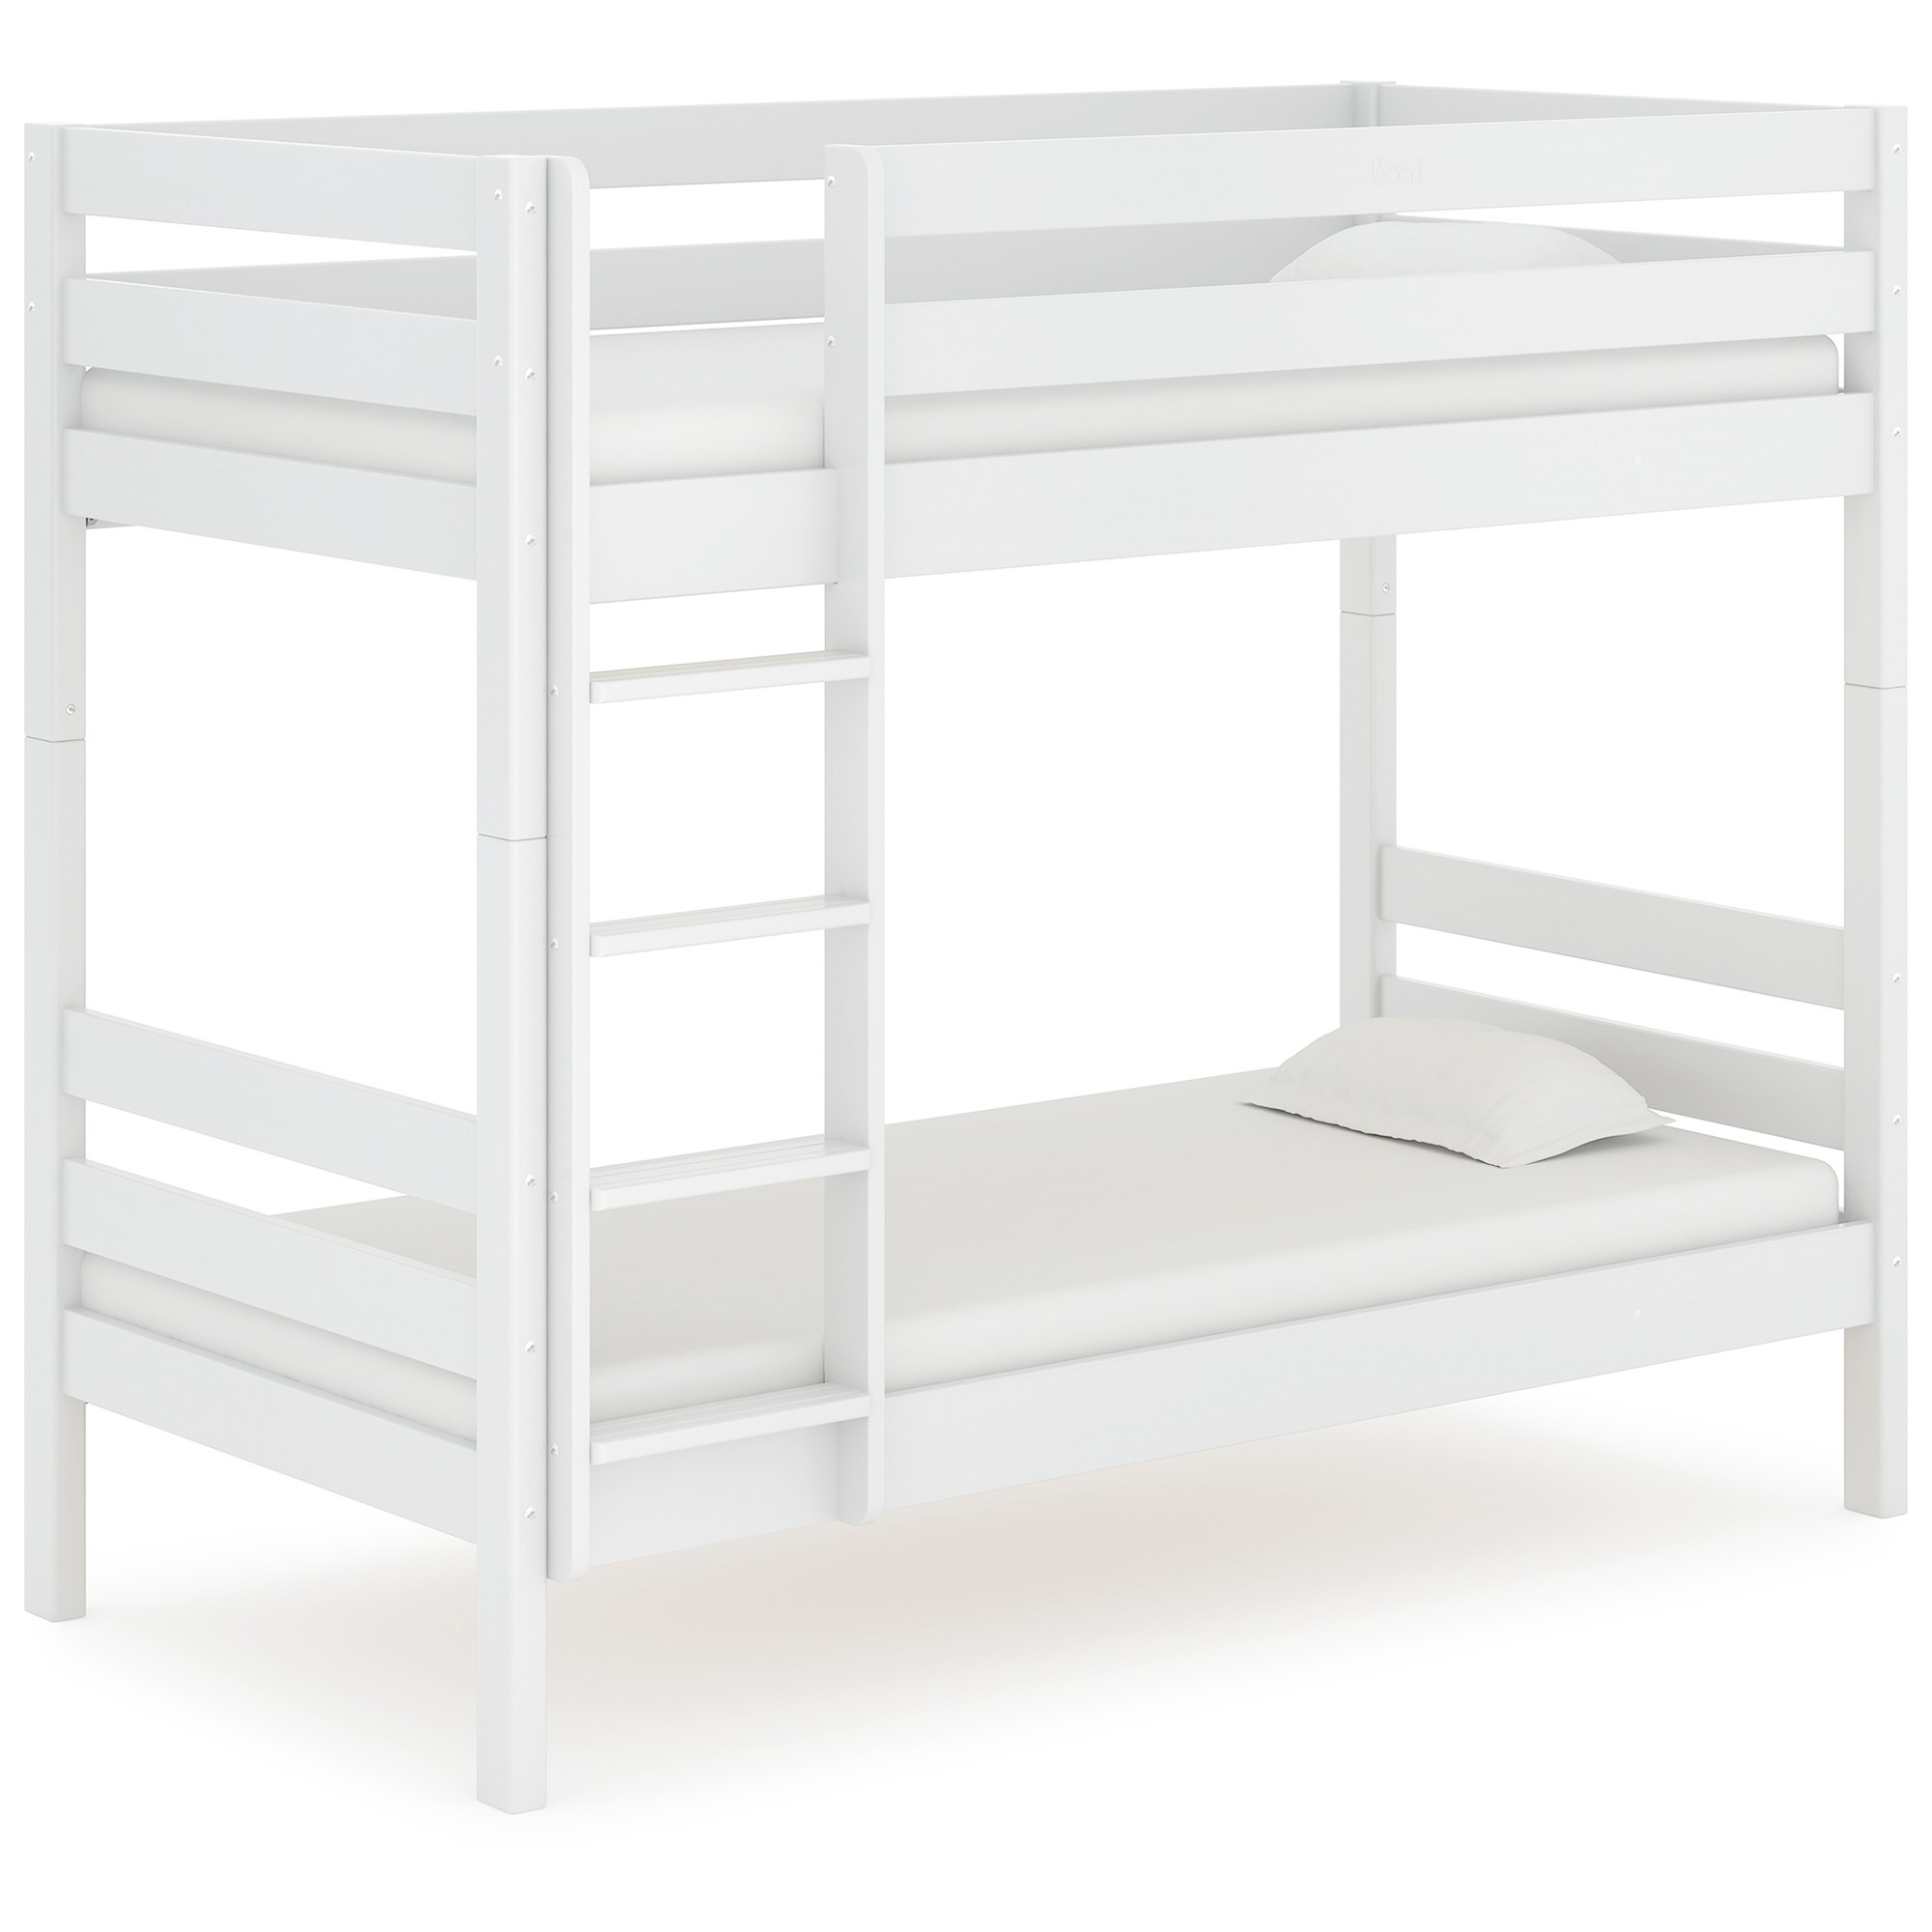 Boori Scout Wooden Bunk Bed, Single, Barley White